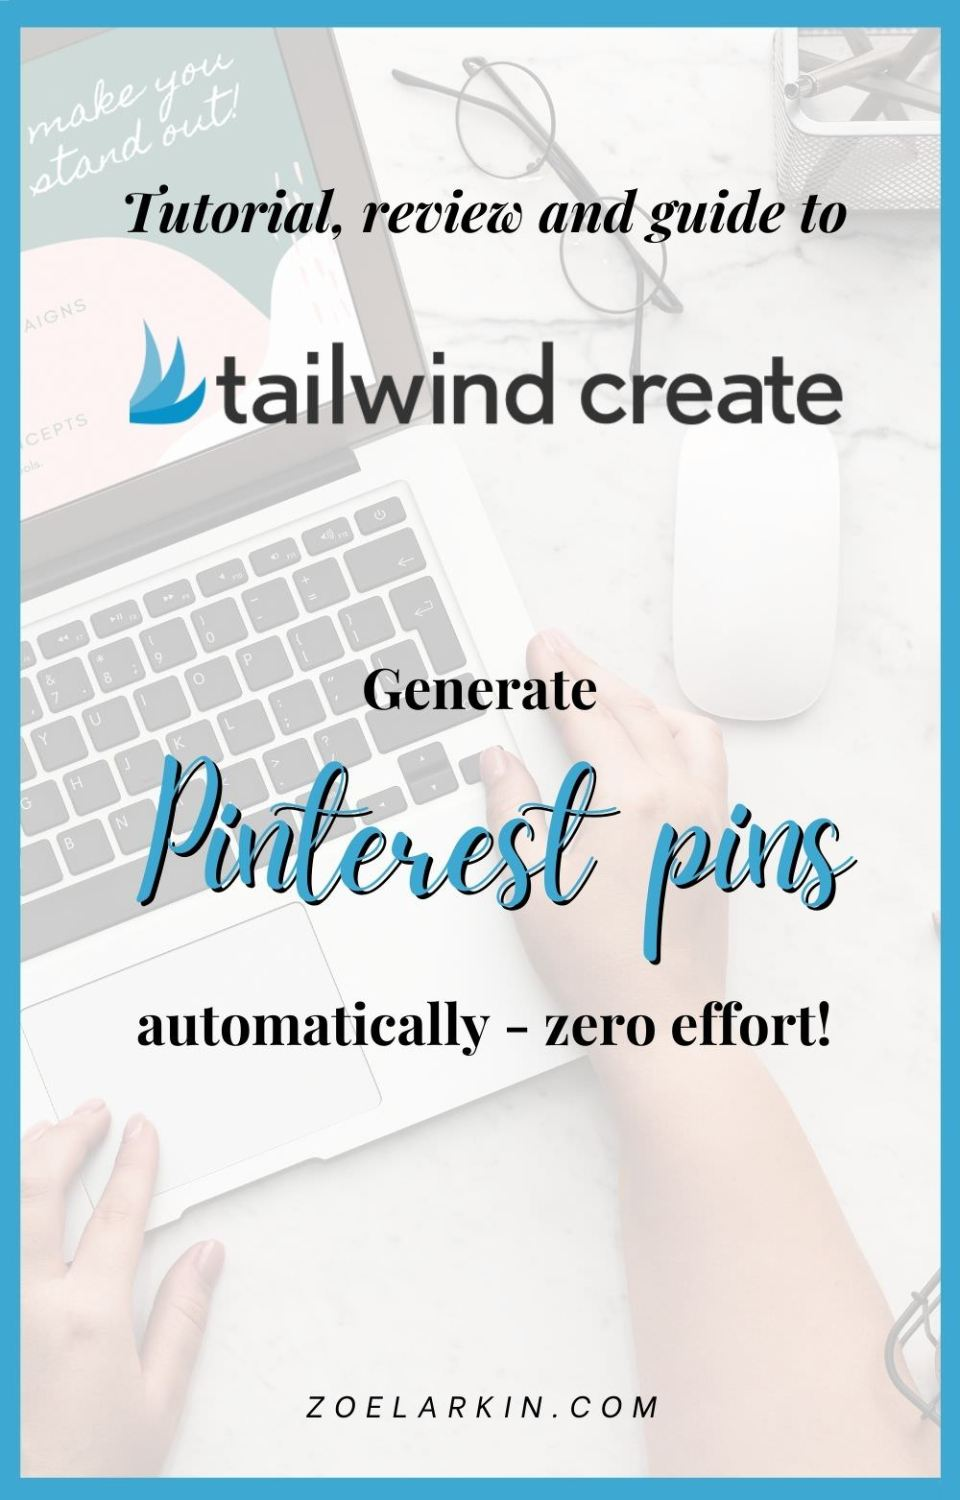 I was curious about Tailwind Create - Tailwind's latest add-on that uses the power of AI to make Pinterest pins automatically! So I tried it out and wrote this honest review as a blog post and video so you can get to see exactly how Tailwind Create works. So, what can this AI software do? How much does Tailwind Create cost and how do the finished pin designs look? I walk you through my pin creation process & show you how I use Tailwind Create for automated Pinterest pin design! #tailwindcreate